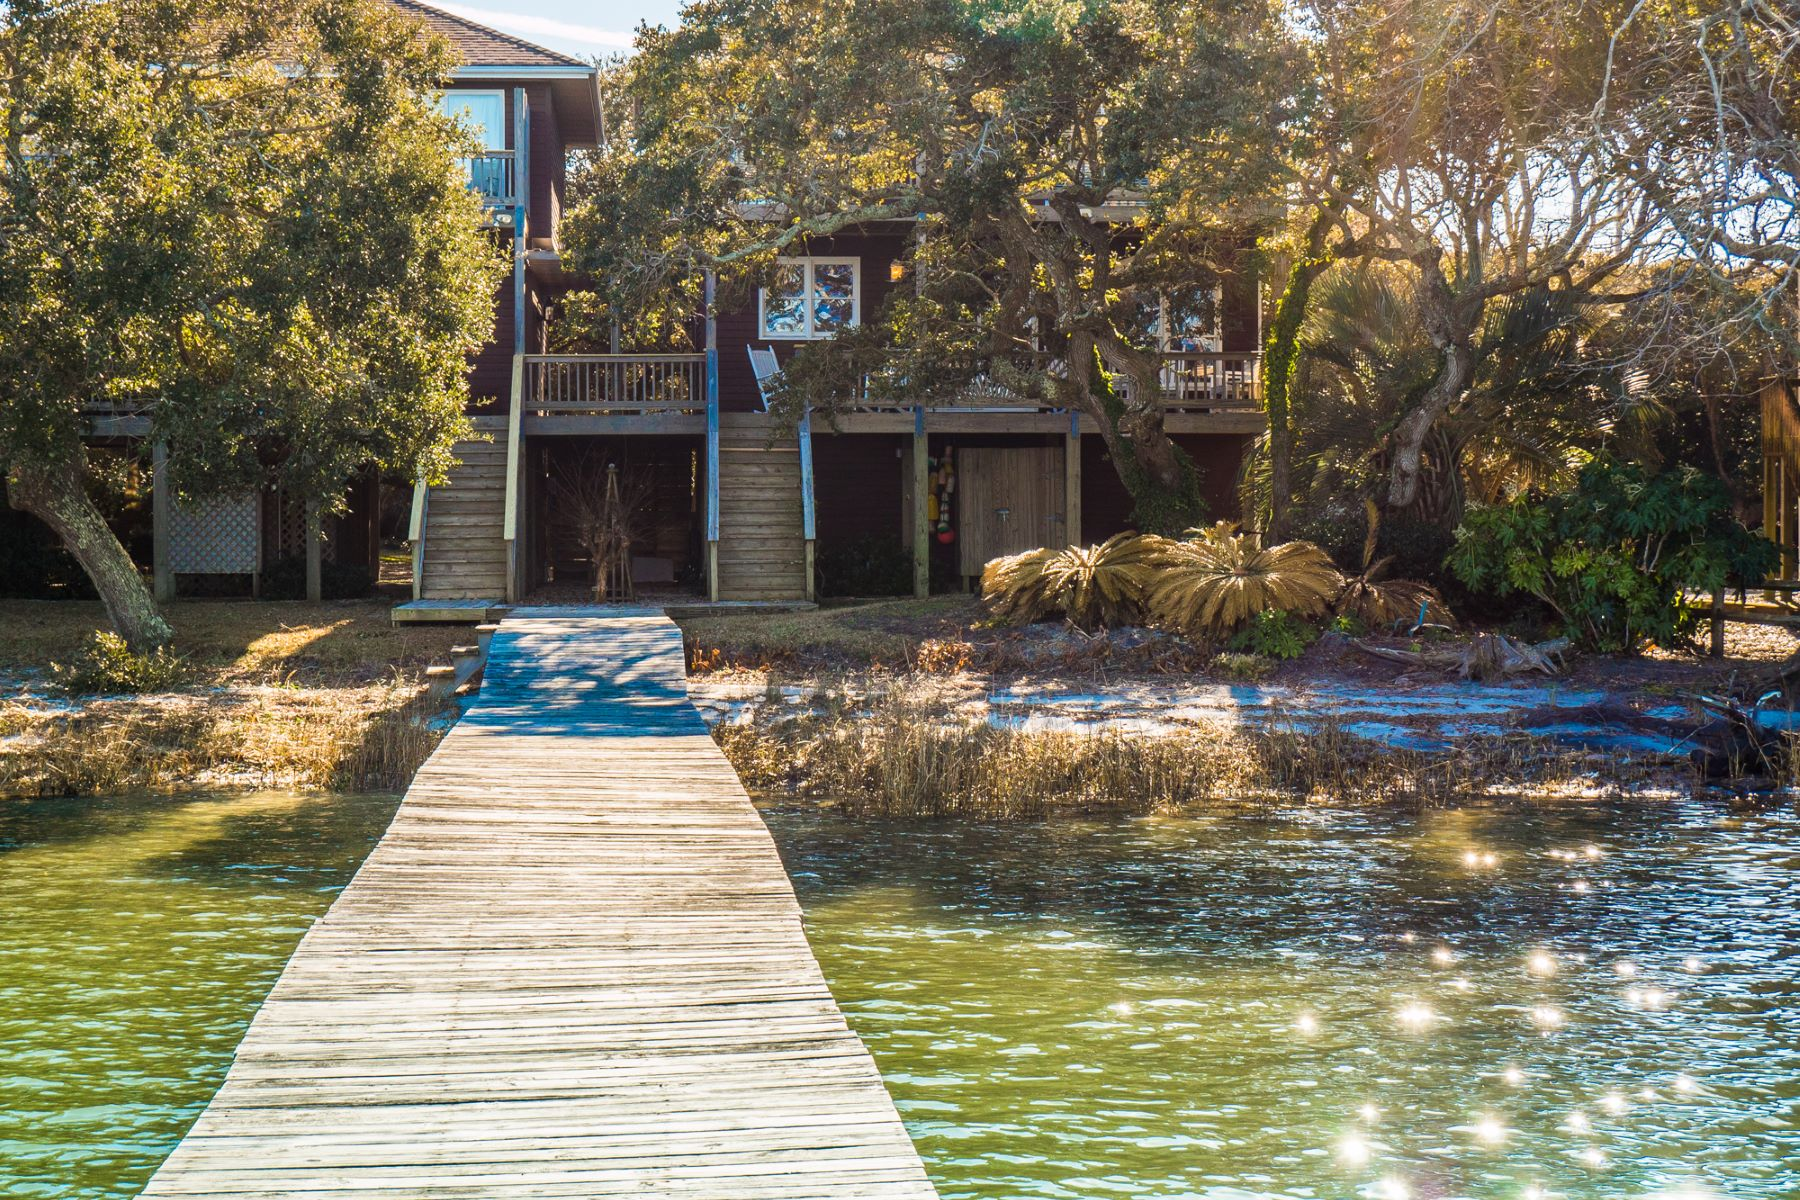 Single Family Home for Sale at Enchanting Sound Front Property on Topsail Island 2719 B S Shore Dr, Surf City, North Carolina, 28445 United States